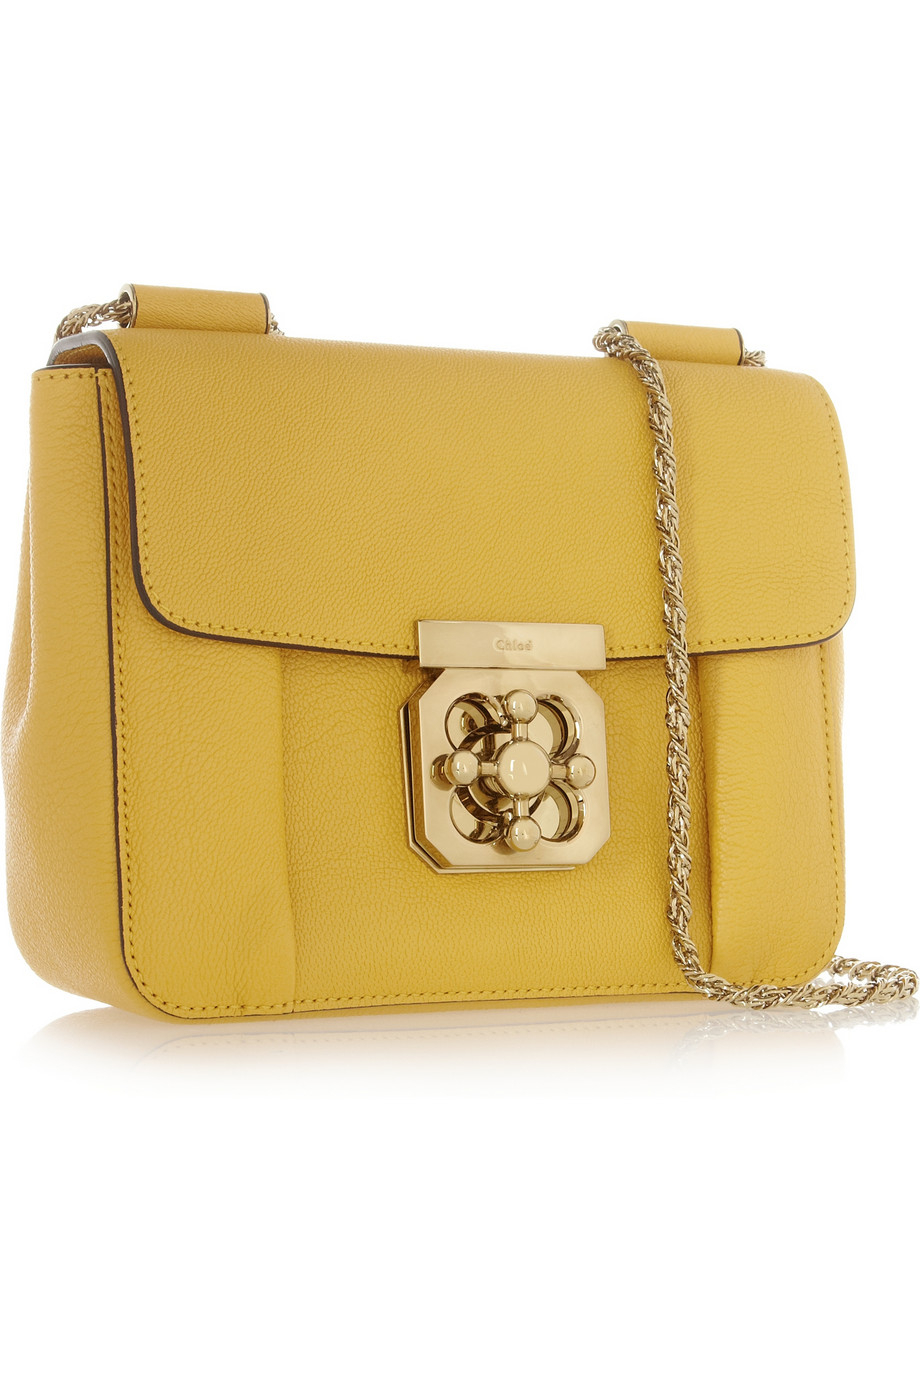 best hand bags - chloe elsie shoulder bag, chloe buy online